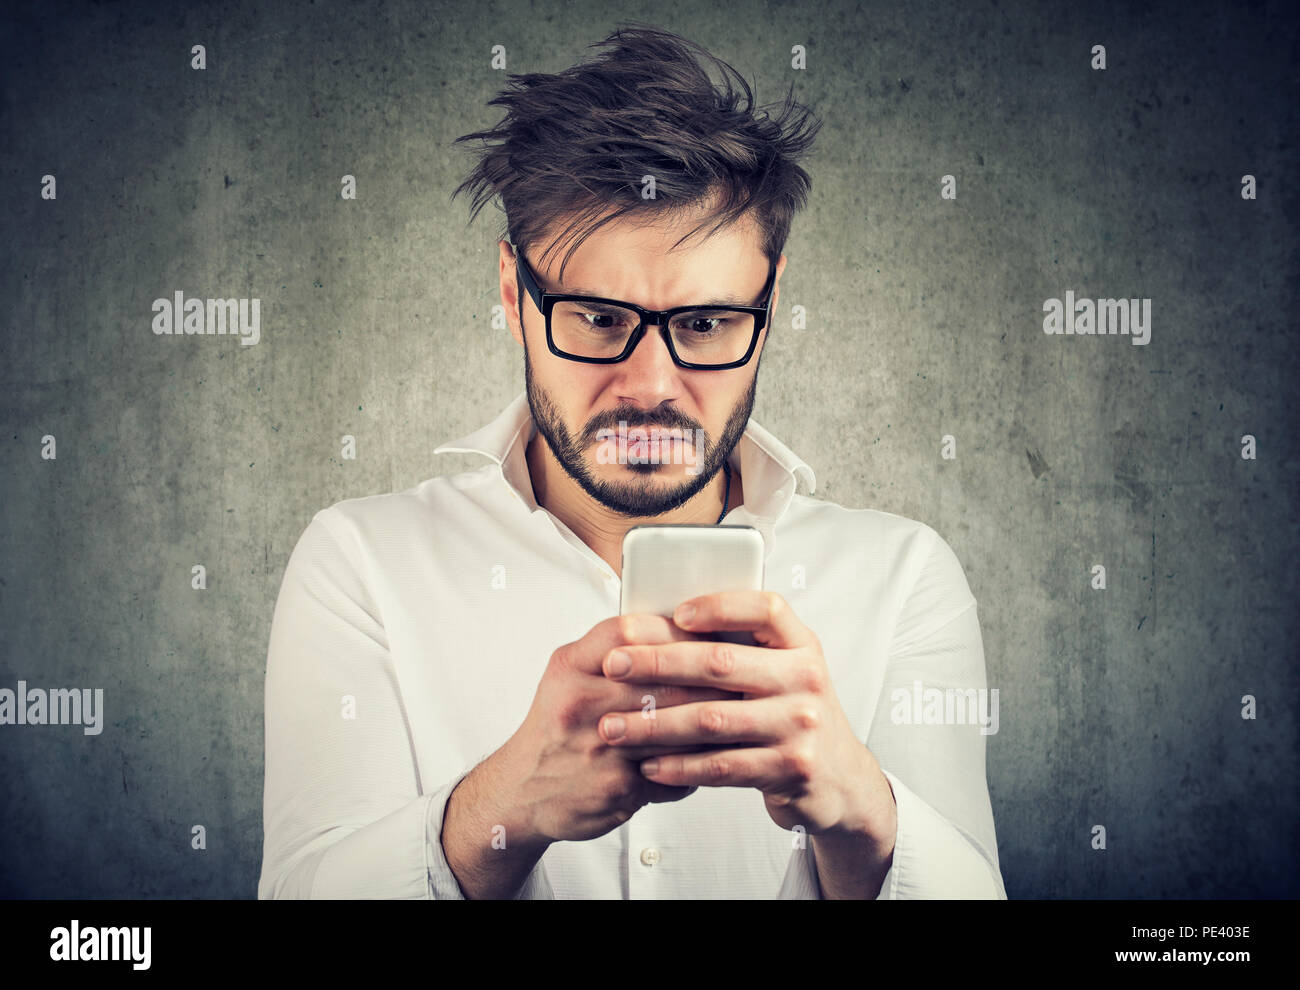 stunned man, surprised offended, shocked by what he sees on his smartphone - Stock Image